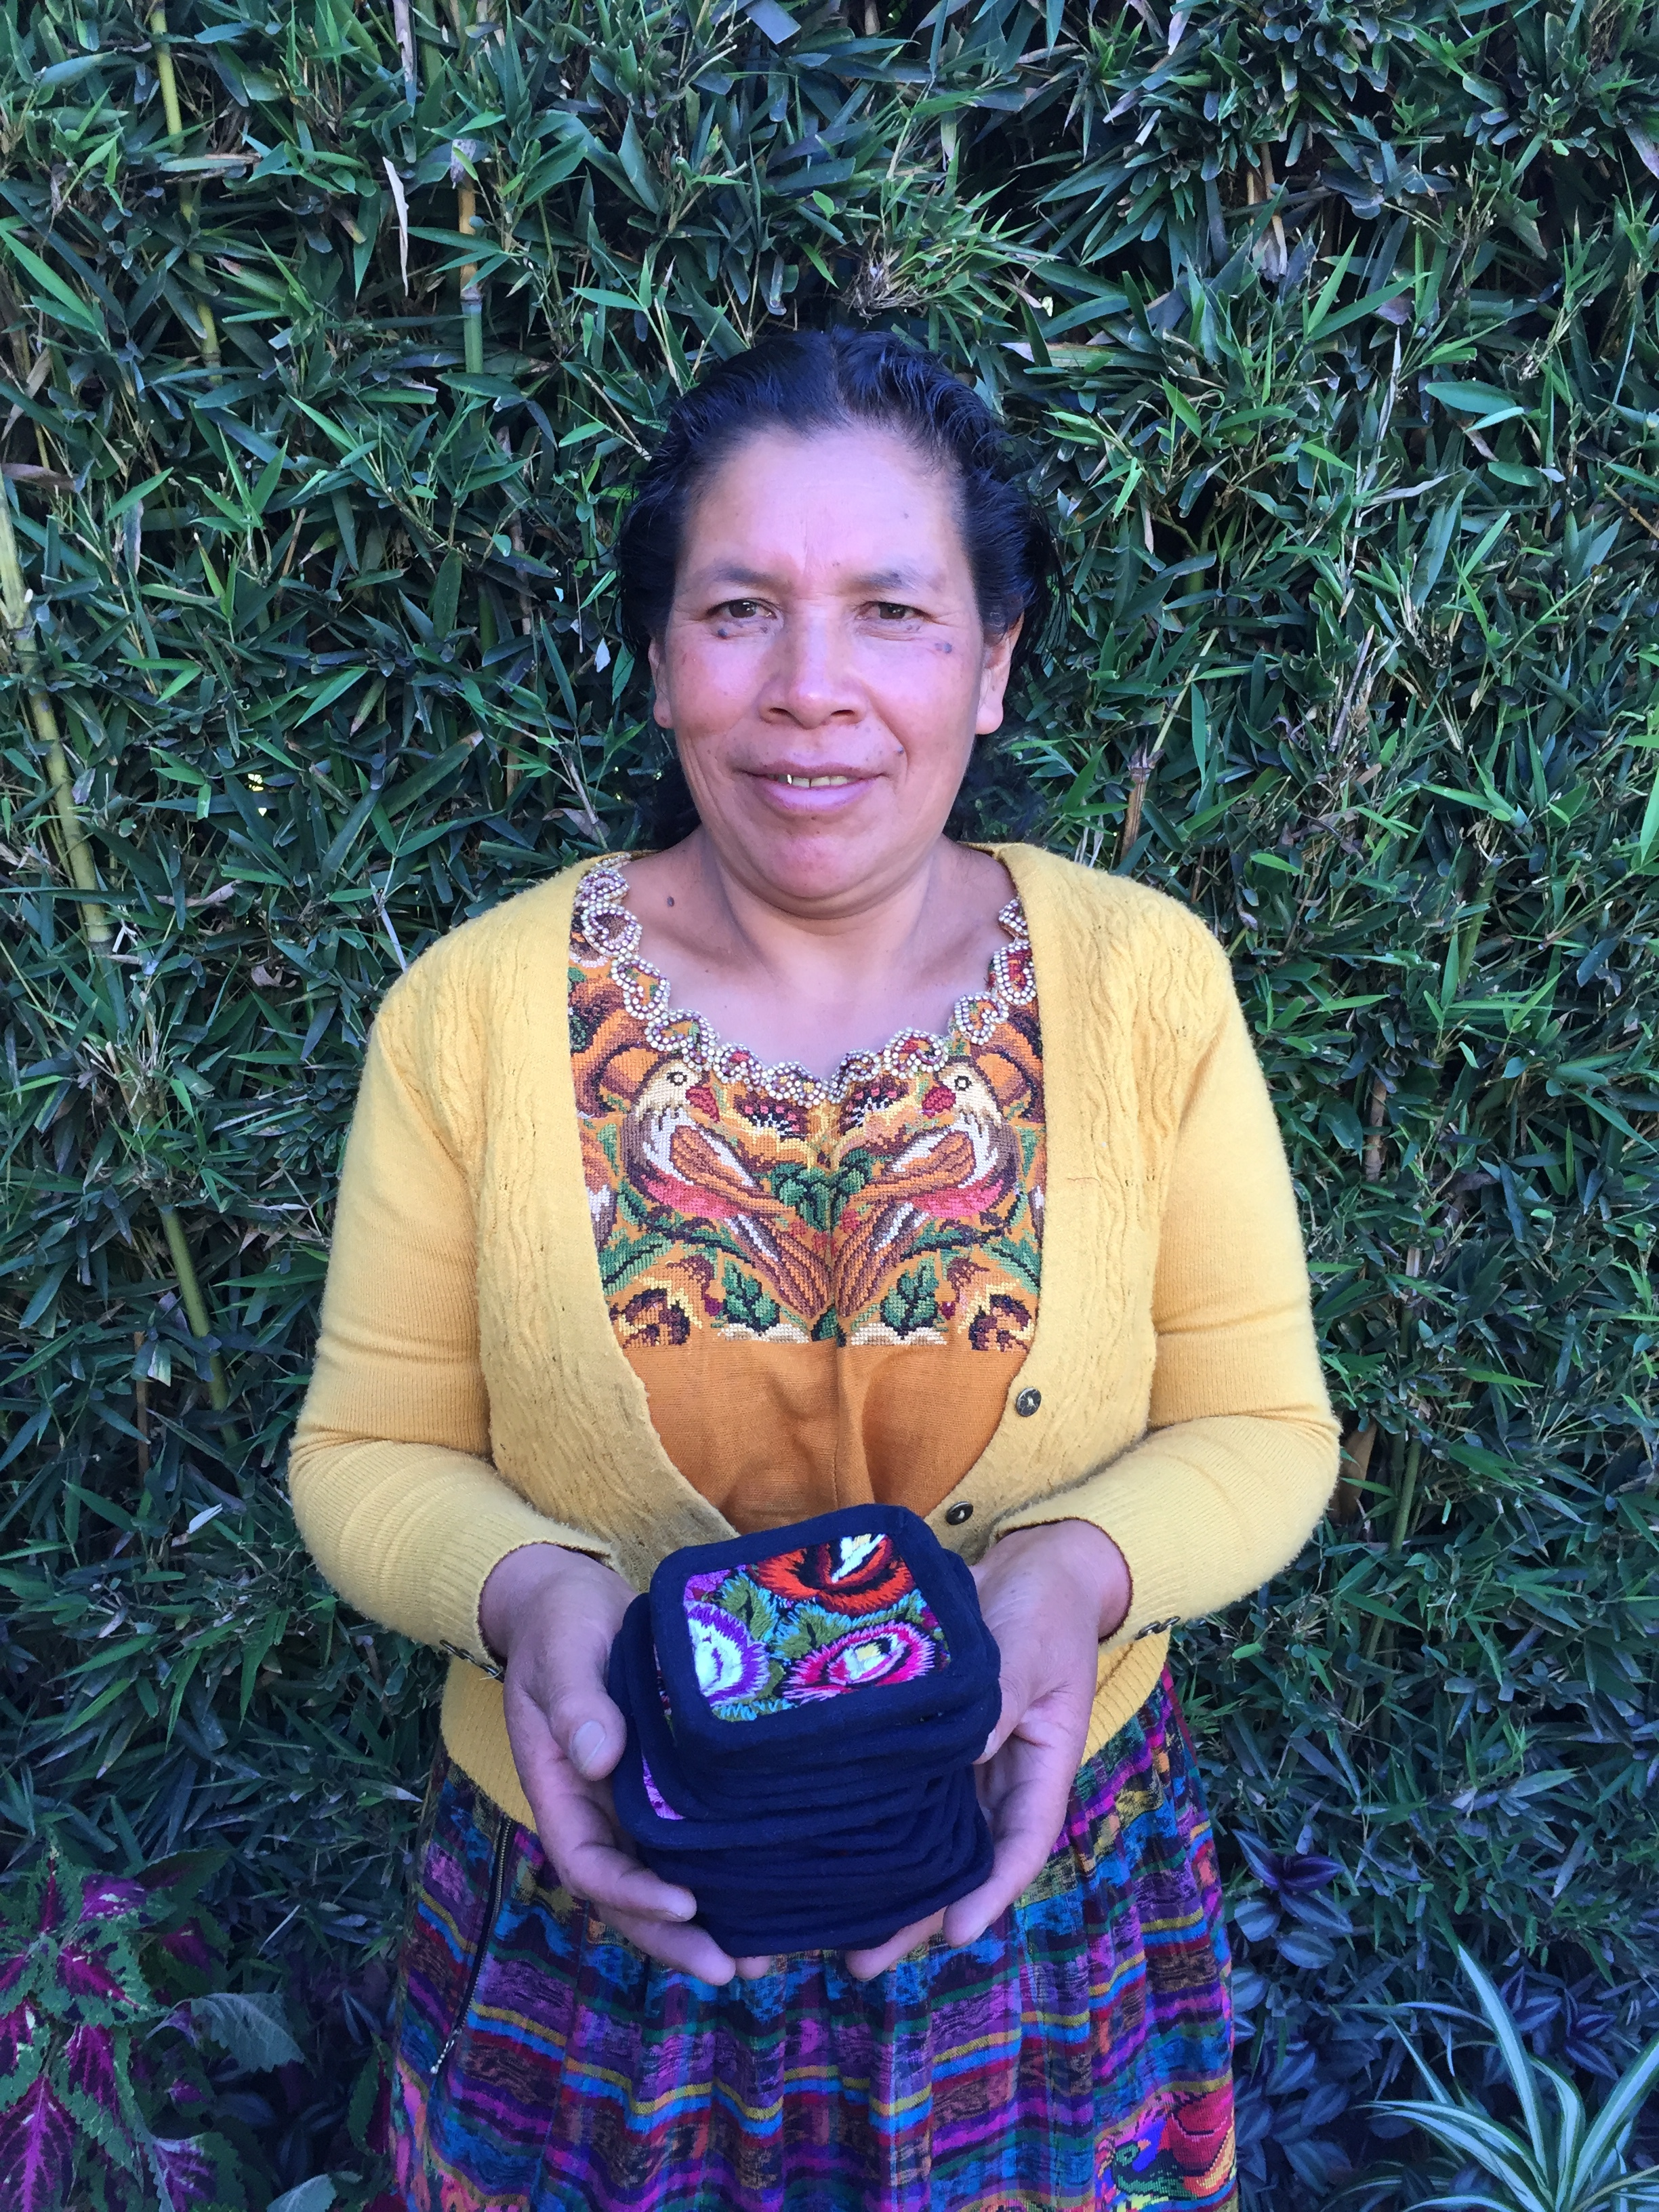 Juana Saquic - Santa Lucia Utatlan - Friendship Bridge's client for 10 cycles.Juana shares her happiness about being a part of the Friendship Bridge family which has helped her develop her own natural talents and build a successful family business.